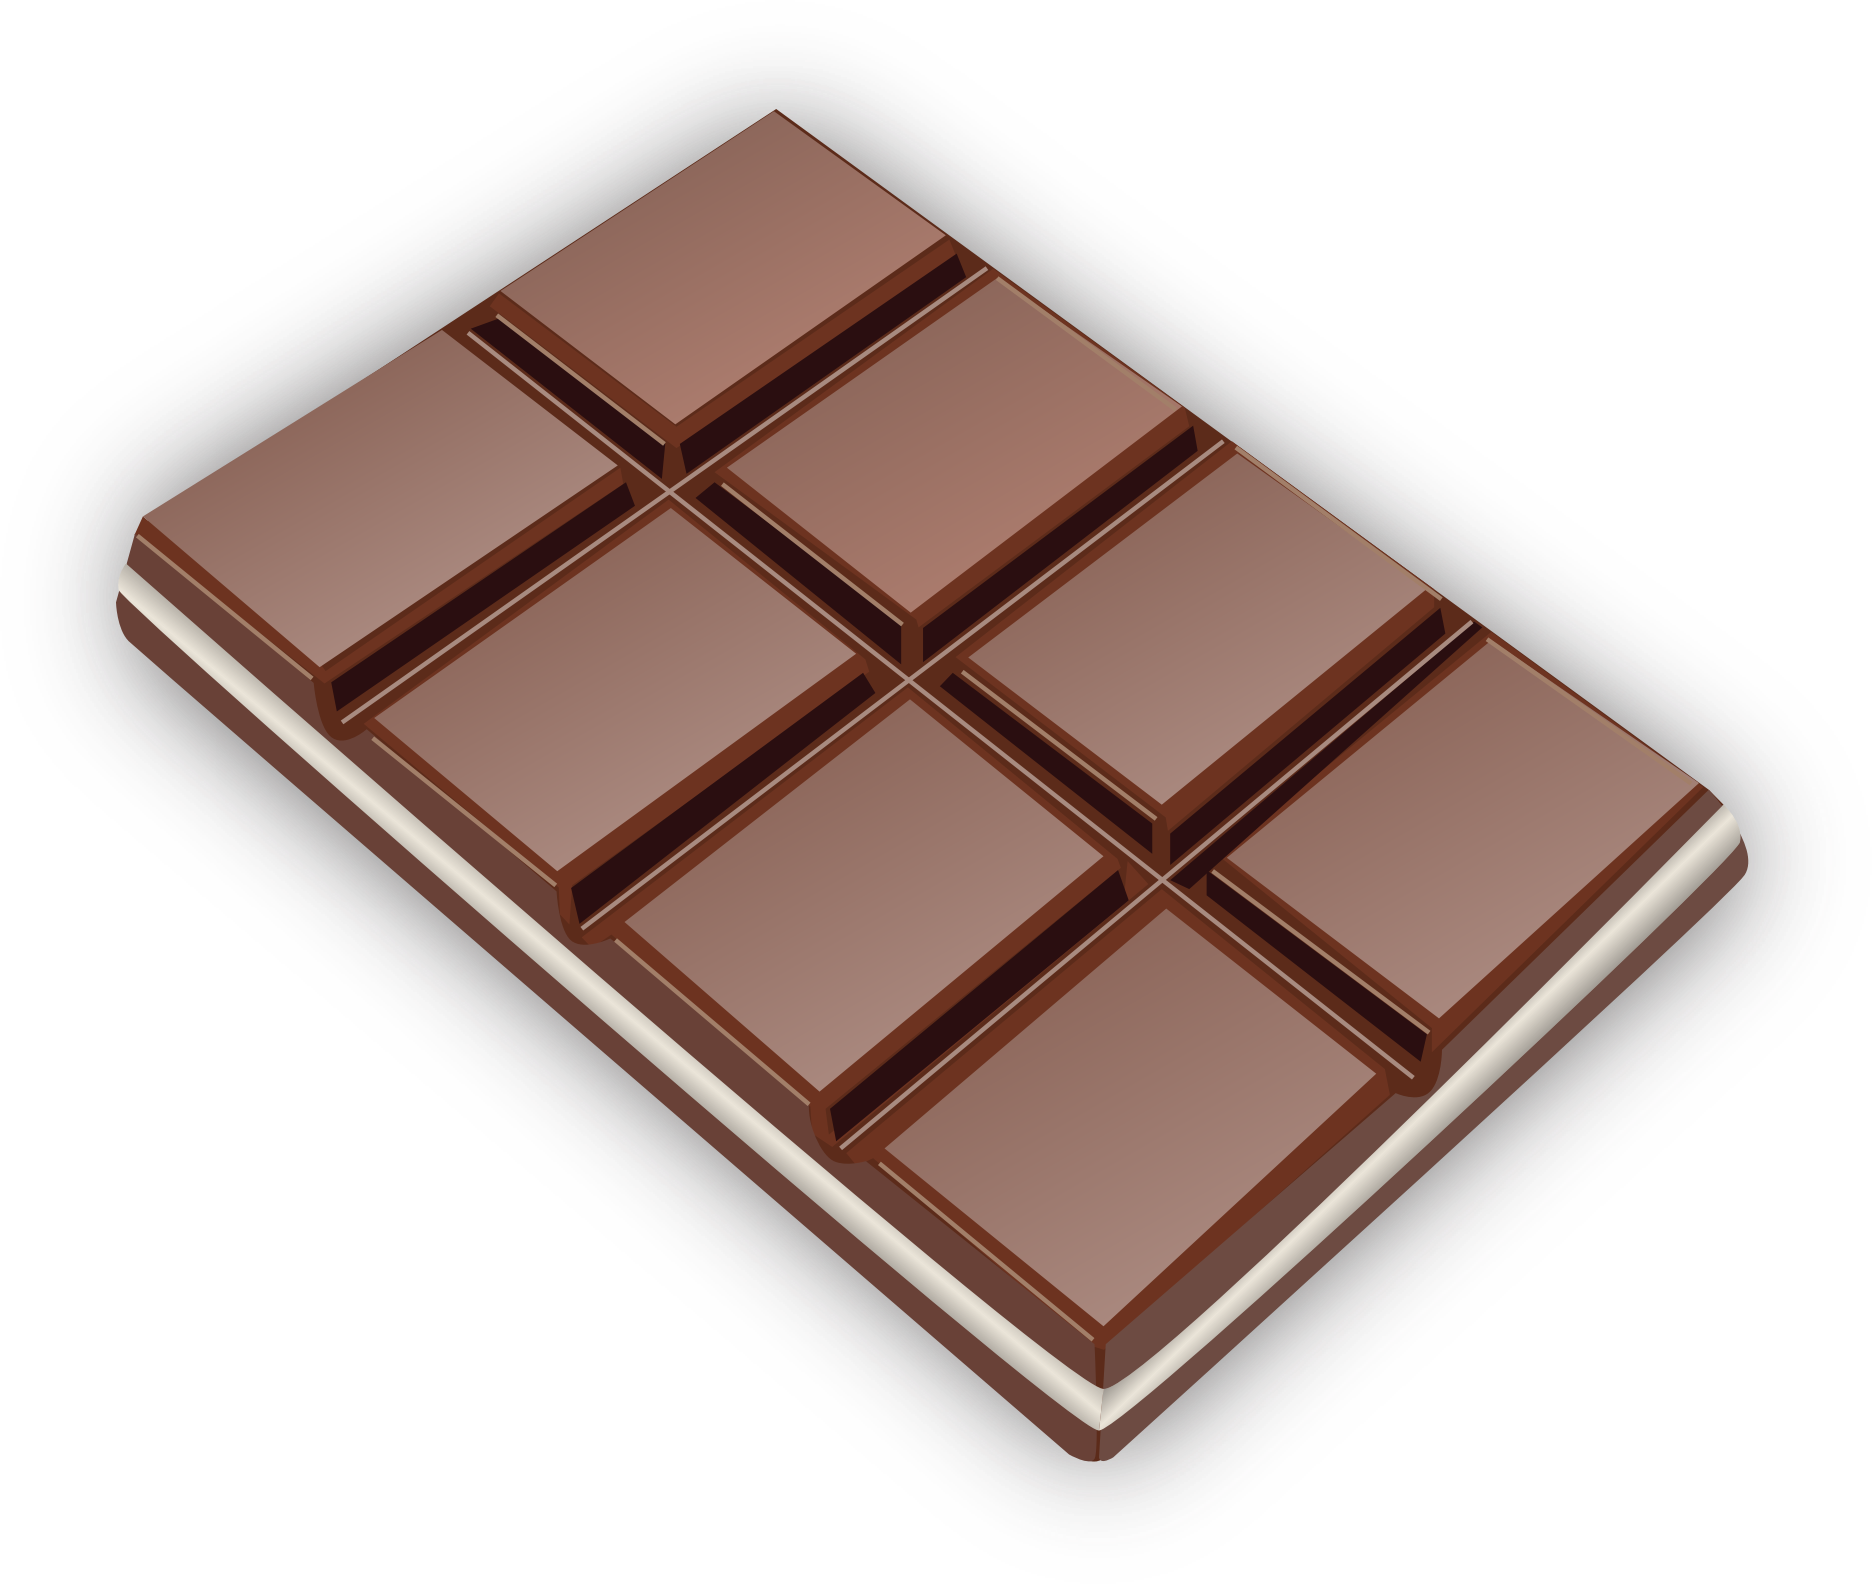 Chocolate bar single clipart png royalty free download Free Chocolate Bar Cliparts, Download Free Clip Art, Free Clip Art ... png royalty free download